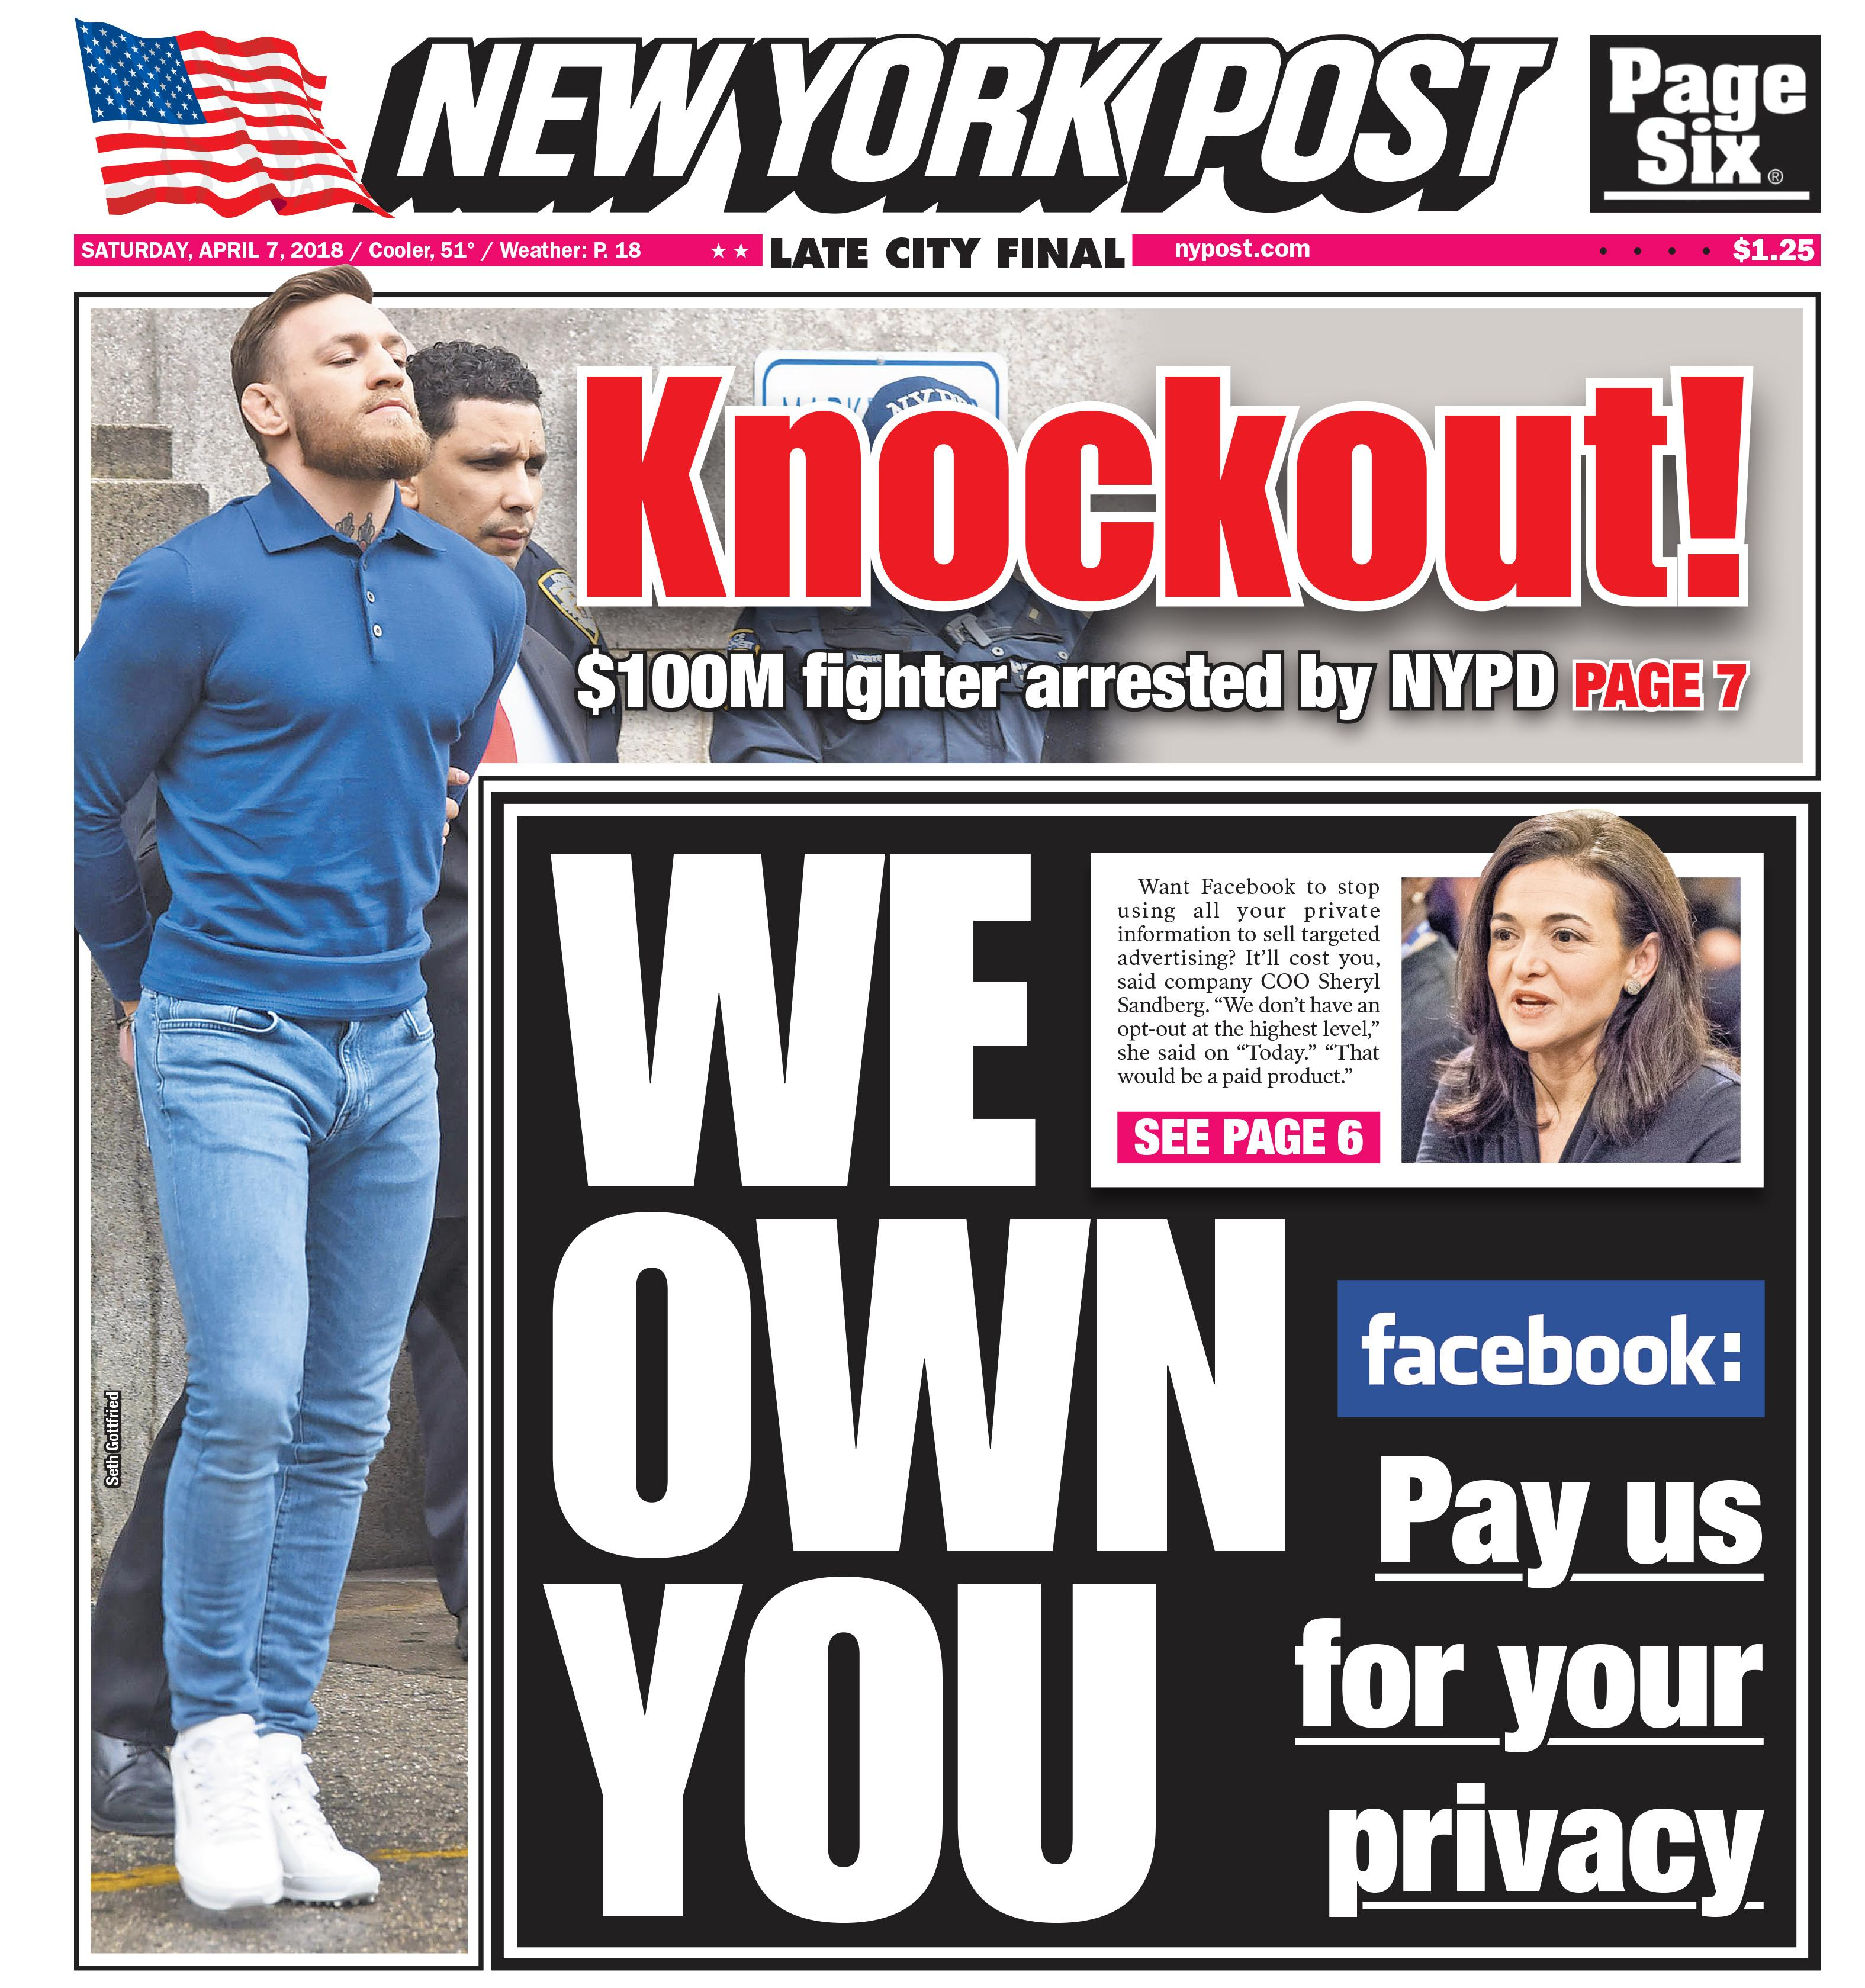 McGregor made headlines on both sides of the Atlantic for his antics in New York